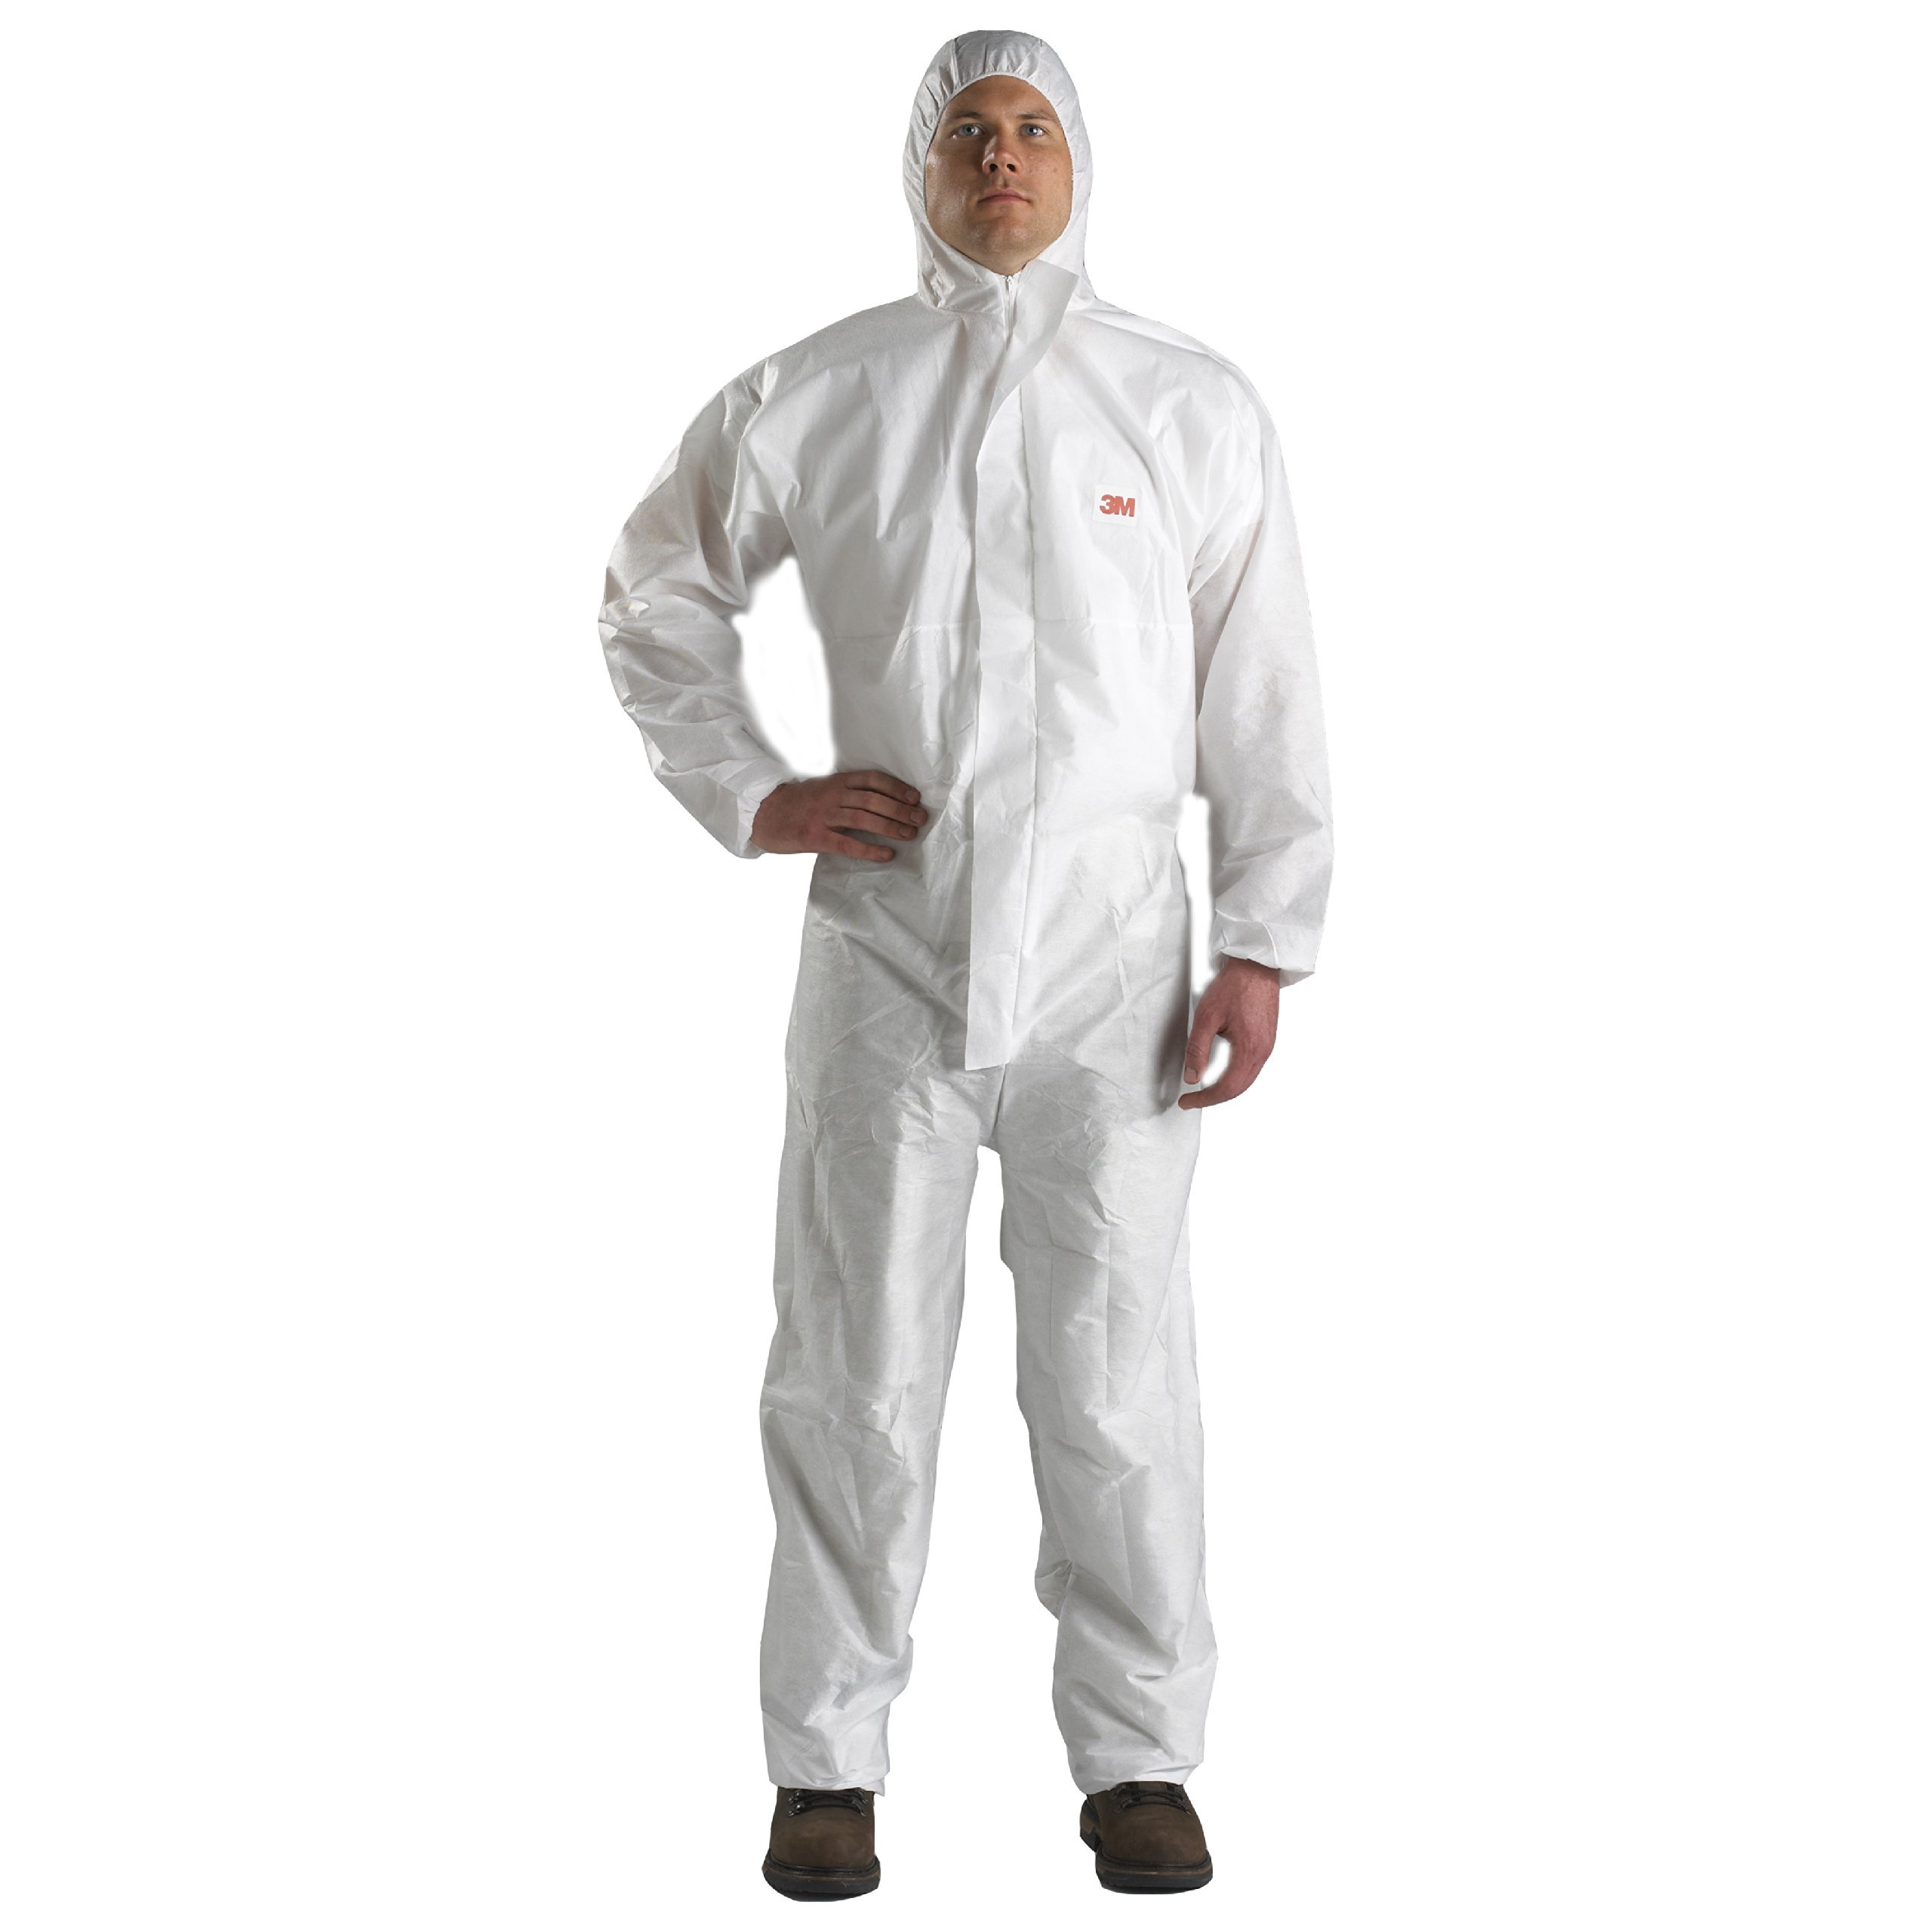 3M 46769 Disposable Protective Coverall Safety Work Wear 4520-M/46768(AAD), SMS Based, Medium, White